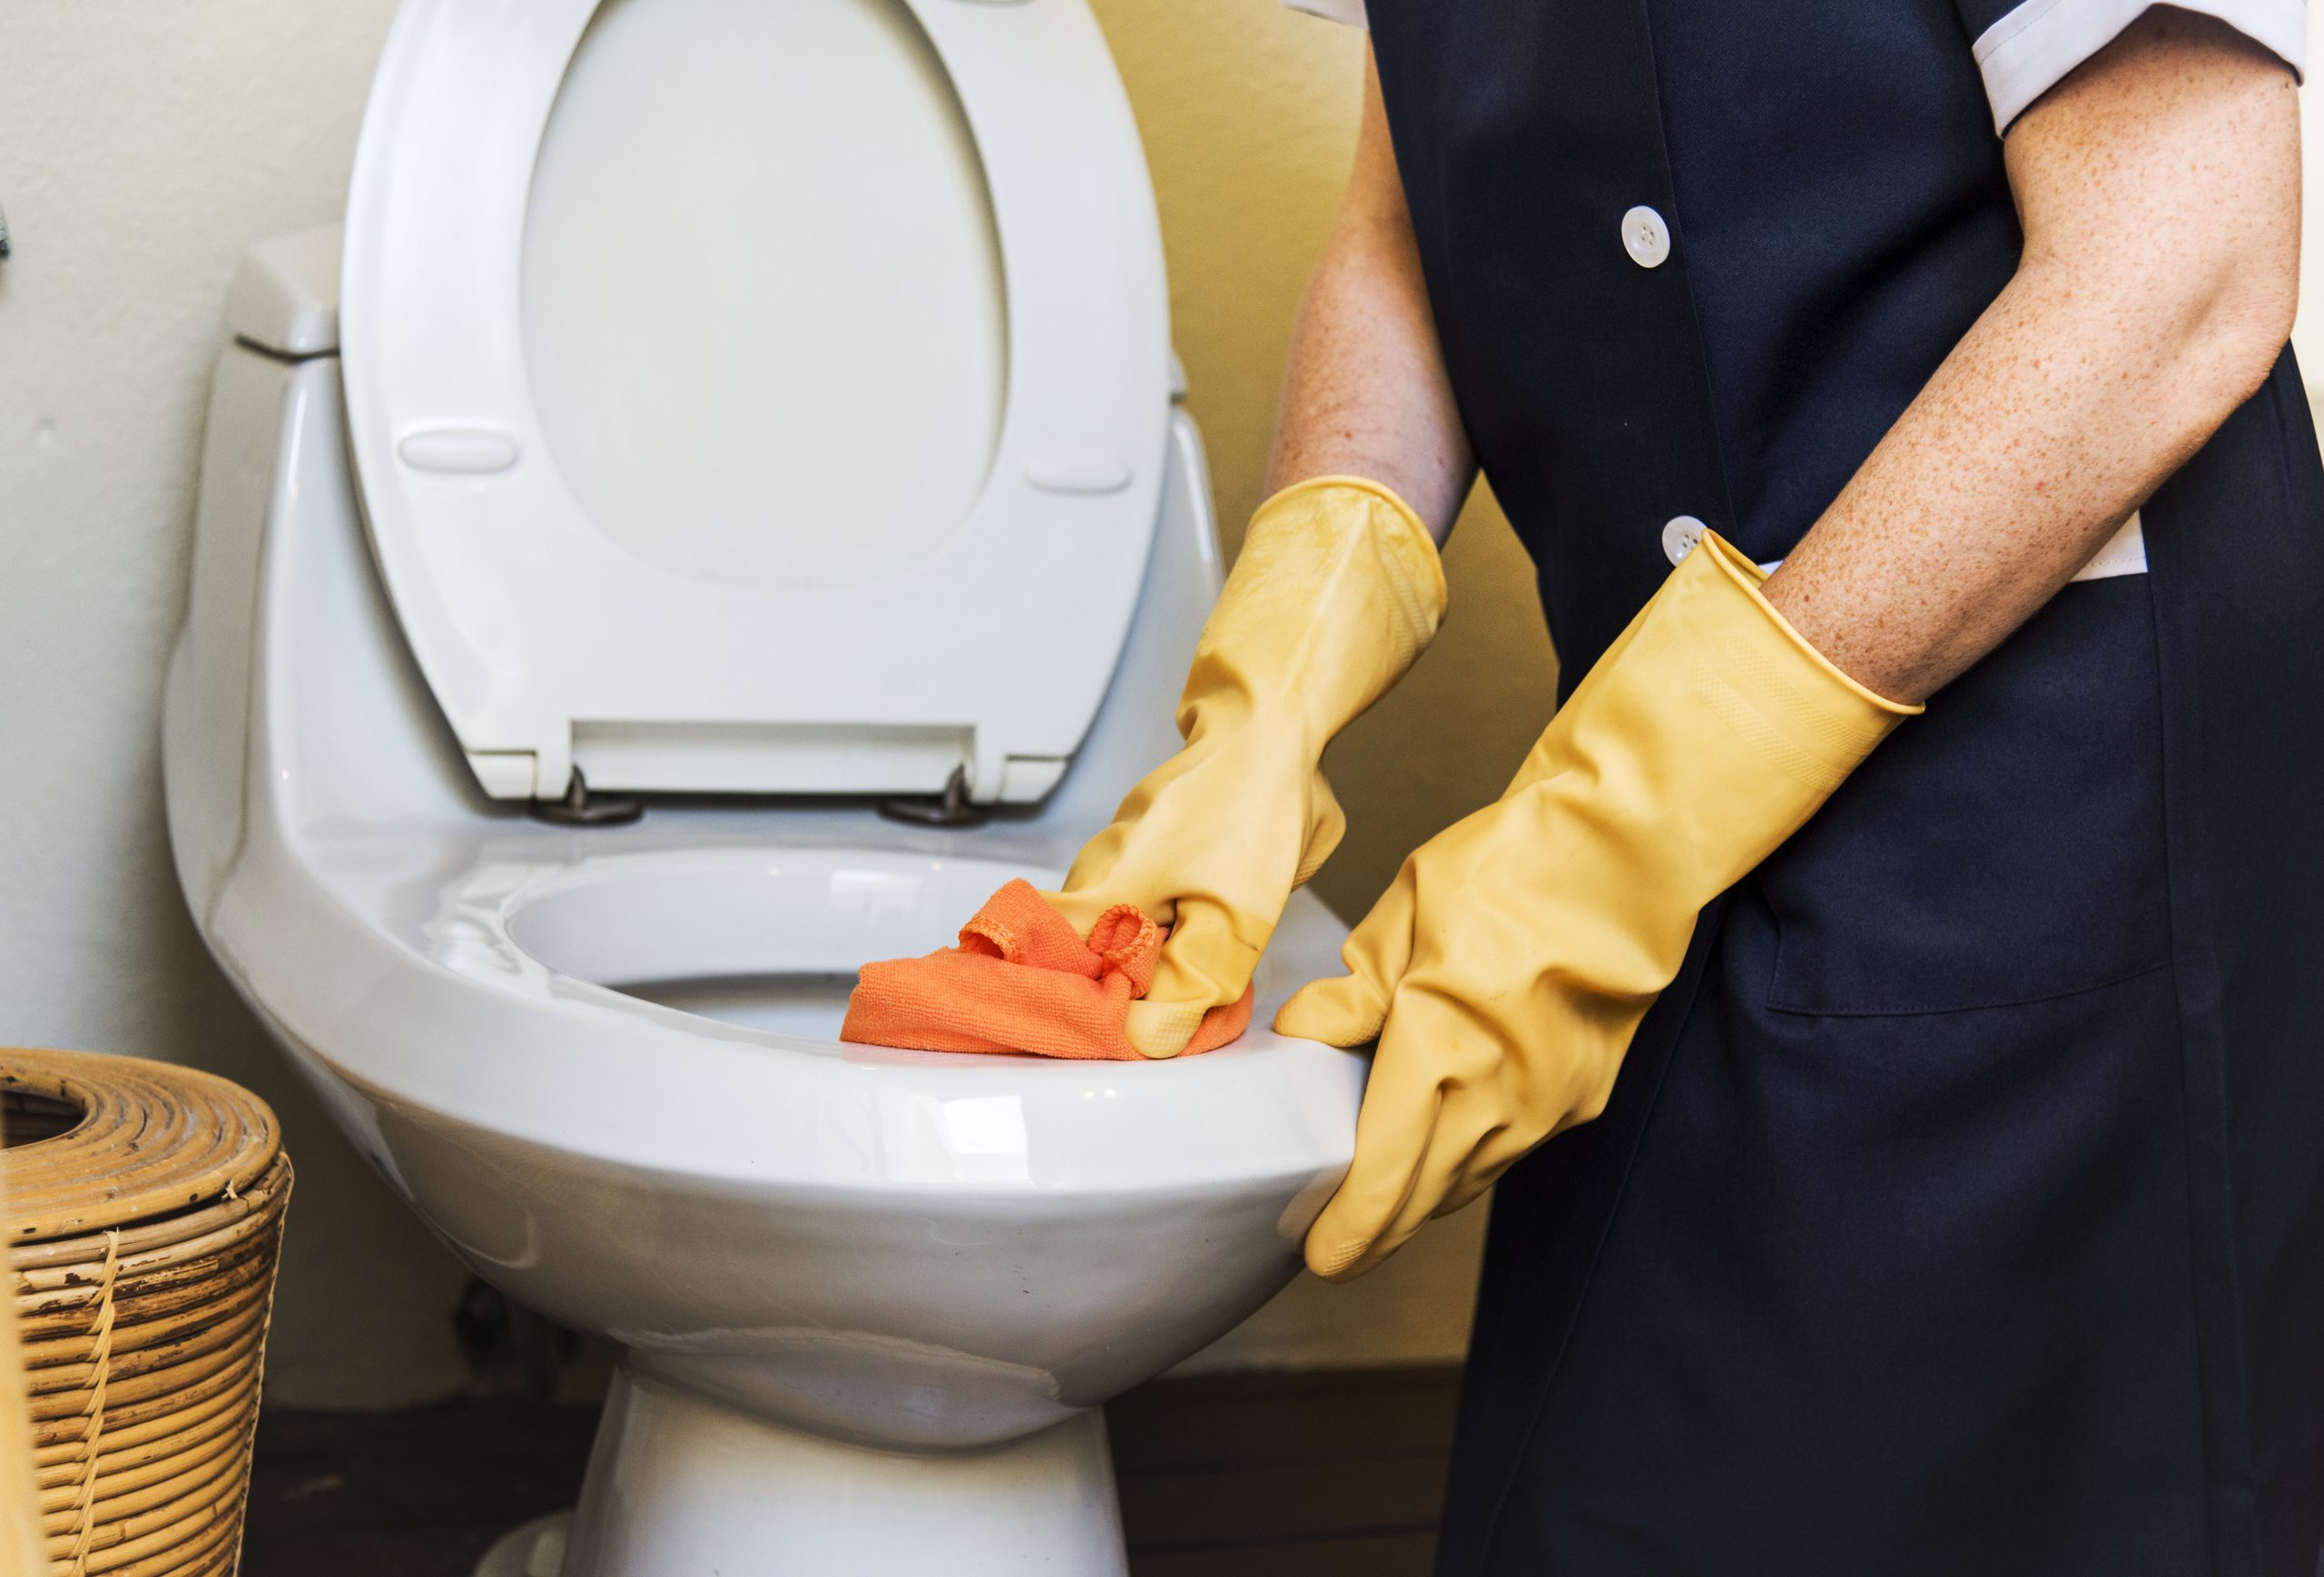 How to Get Toilets Really Clean